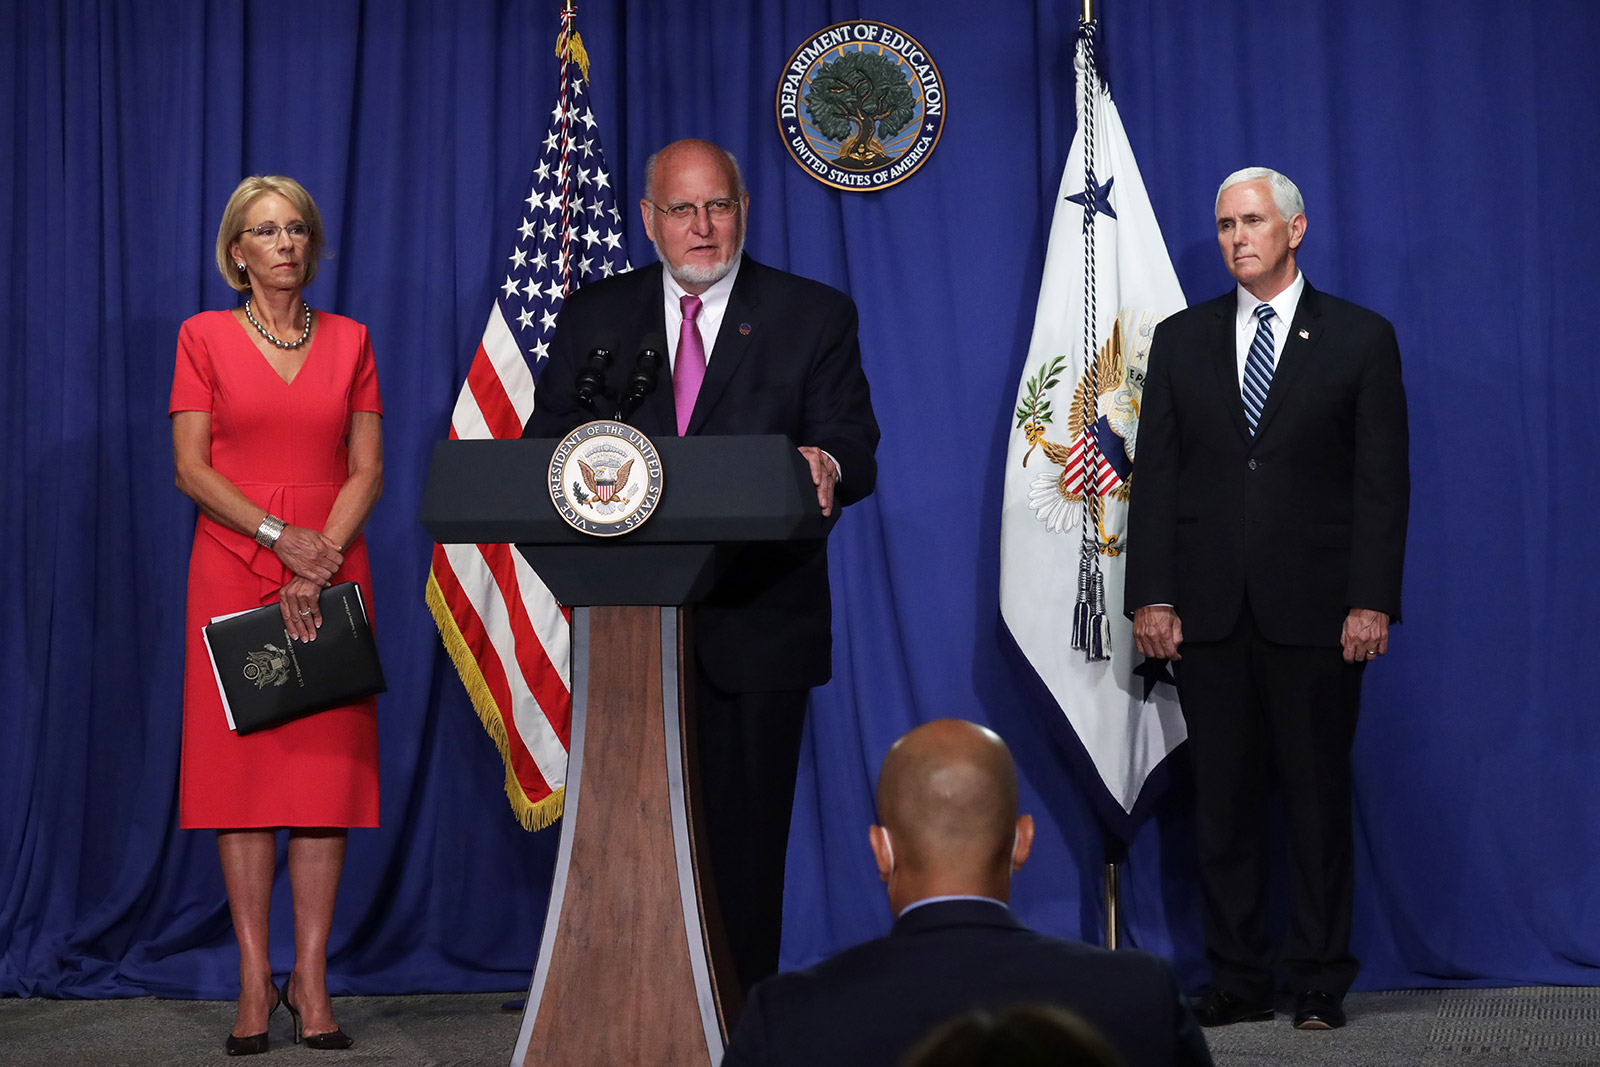 CDC Director Robert Redfield speaks as US Education Secretary Betsy DeVos and Vice President Mike Pence listen during a briefing at the US Department of Education on July 8.